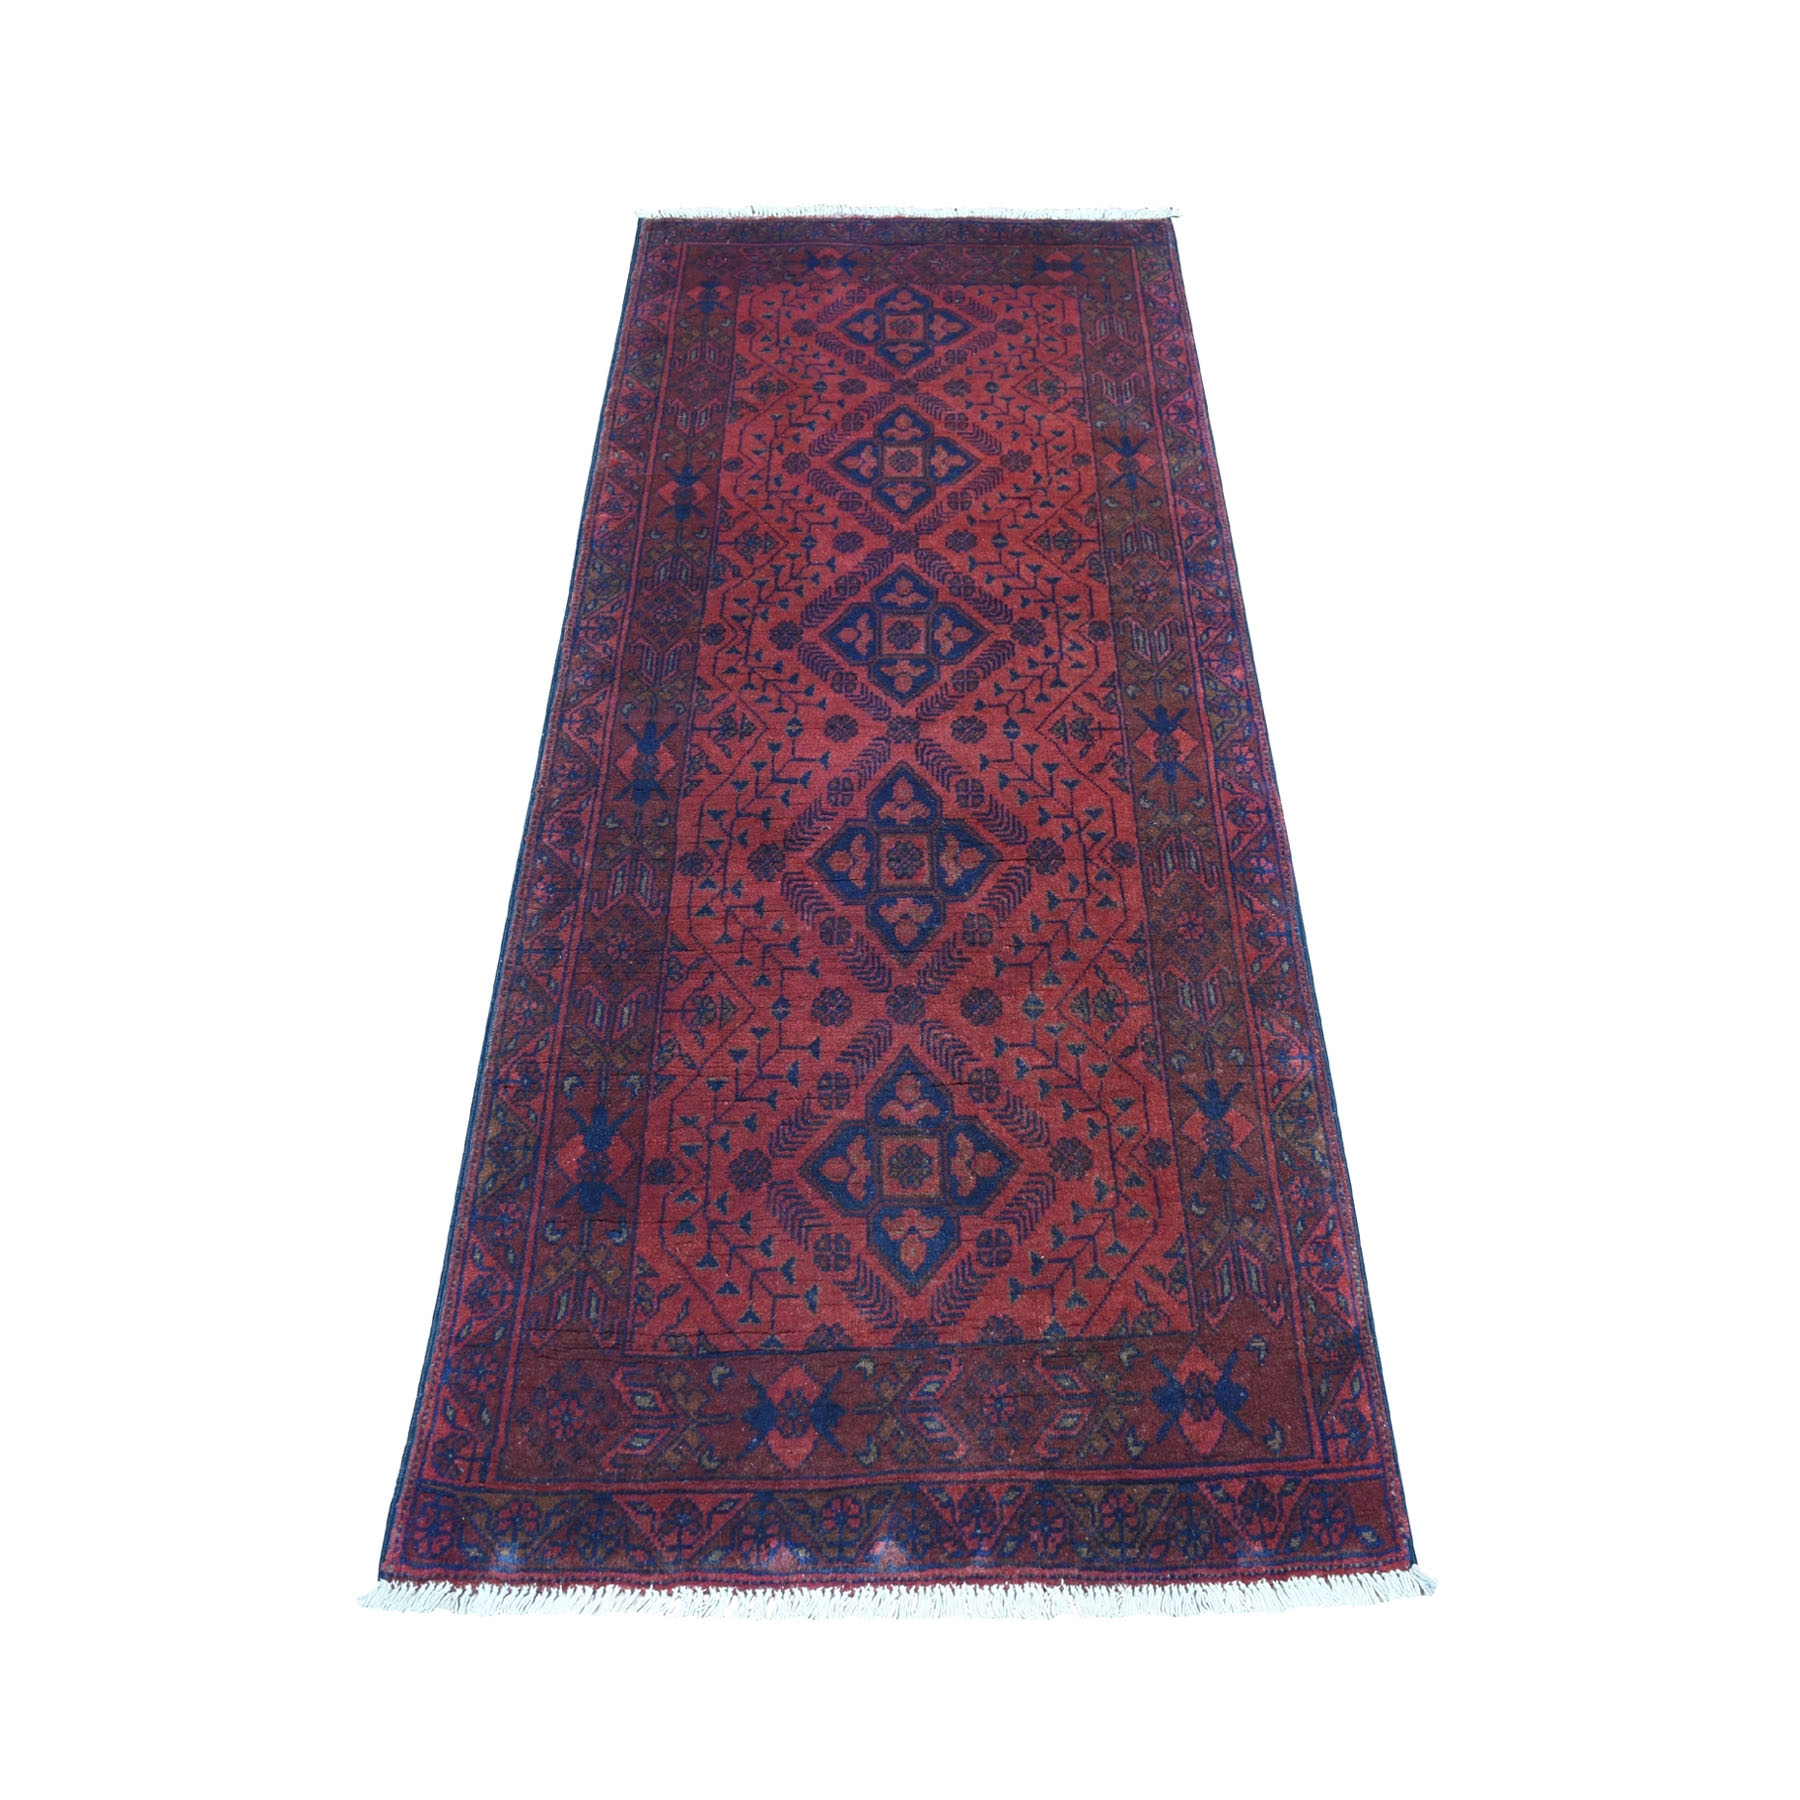 "2'7""x6'3"" Deep and Saturated Red Geometric Afghan Andkhoy Runner Pure Wool Hand Knotted Oriental Rug"